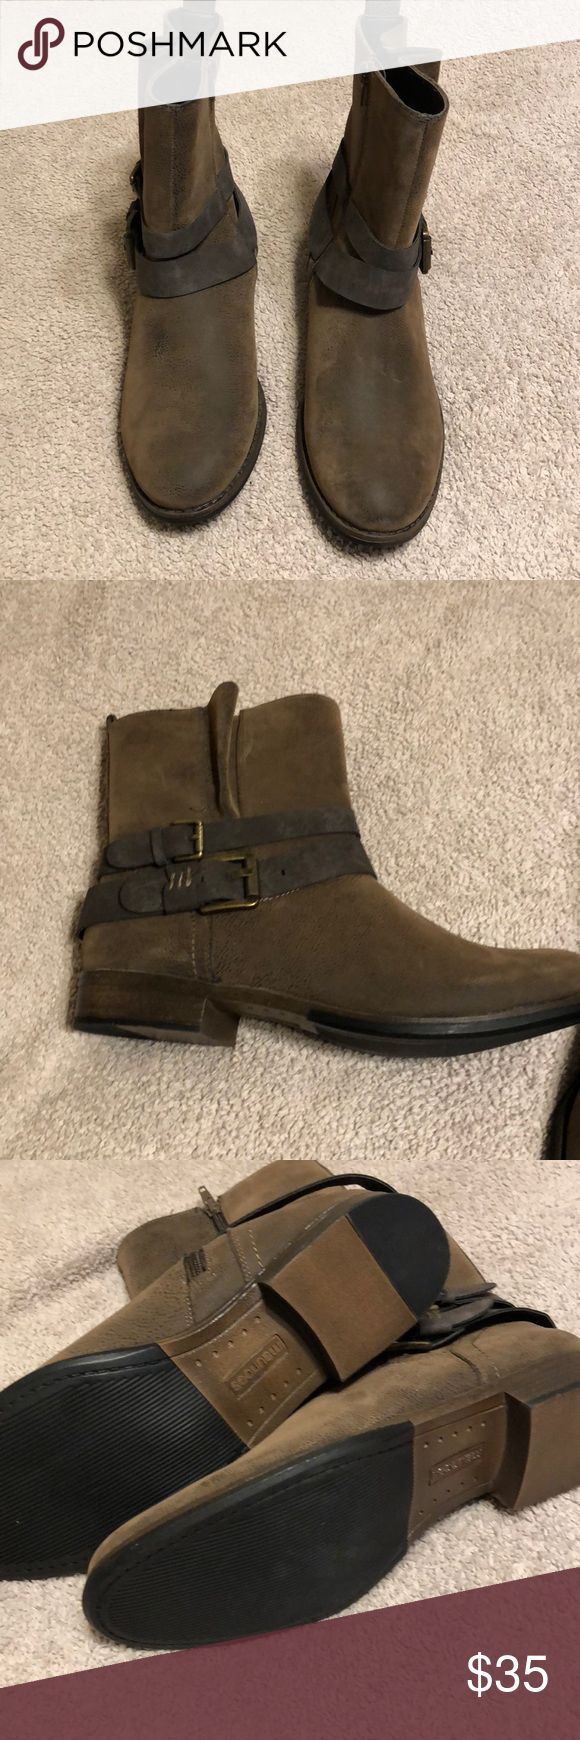 Maurices boots New never been worn Maurices boots size 11 Maurices Shoes Ankle Boots & Booties